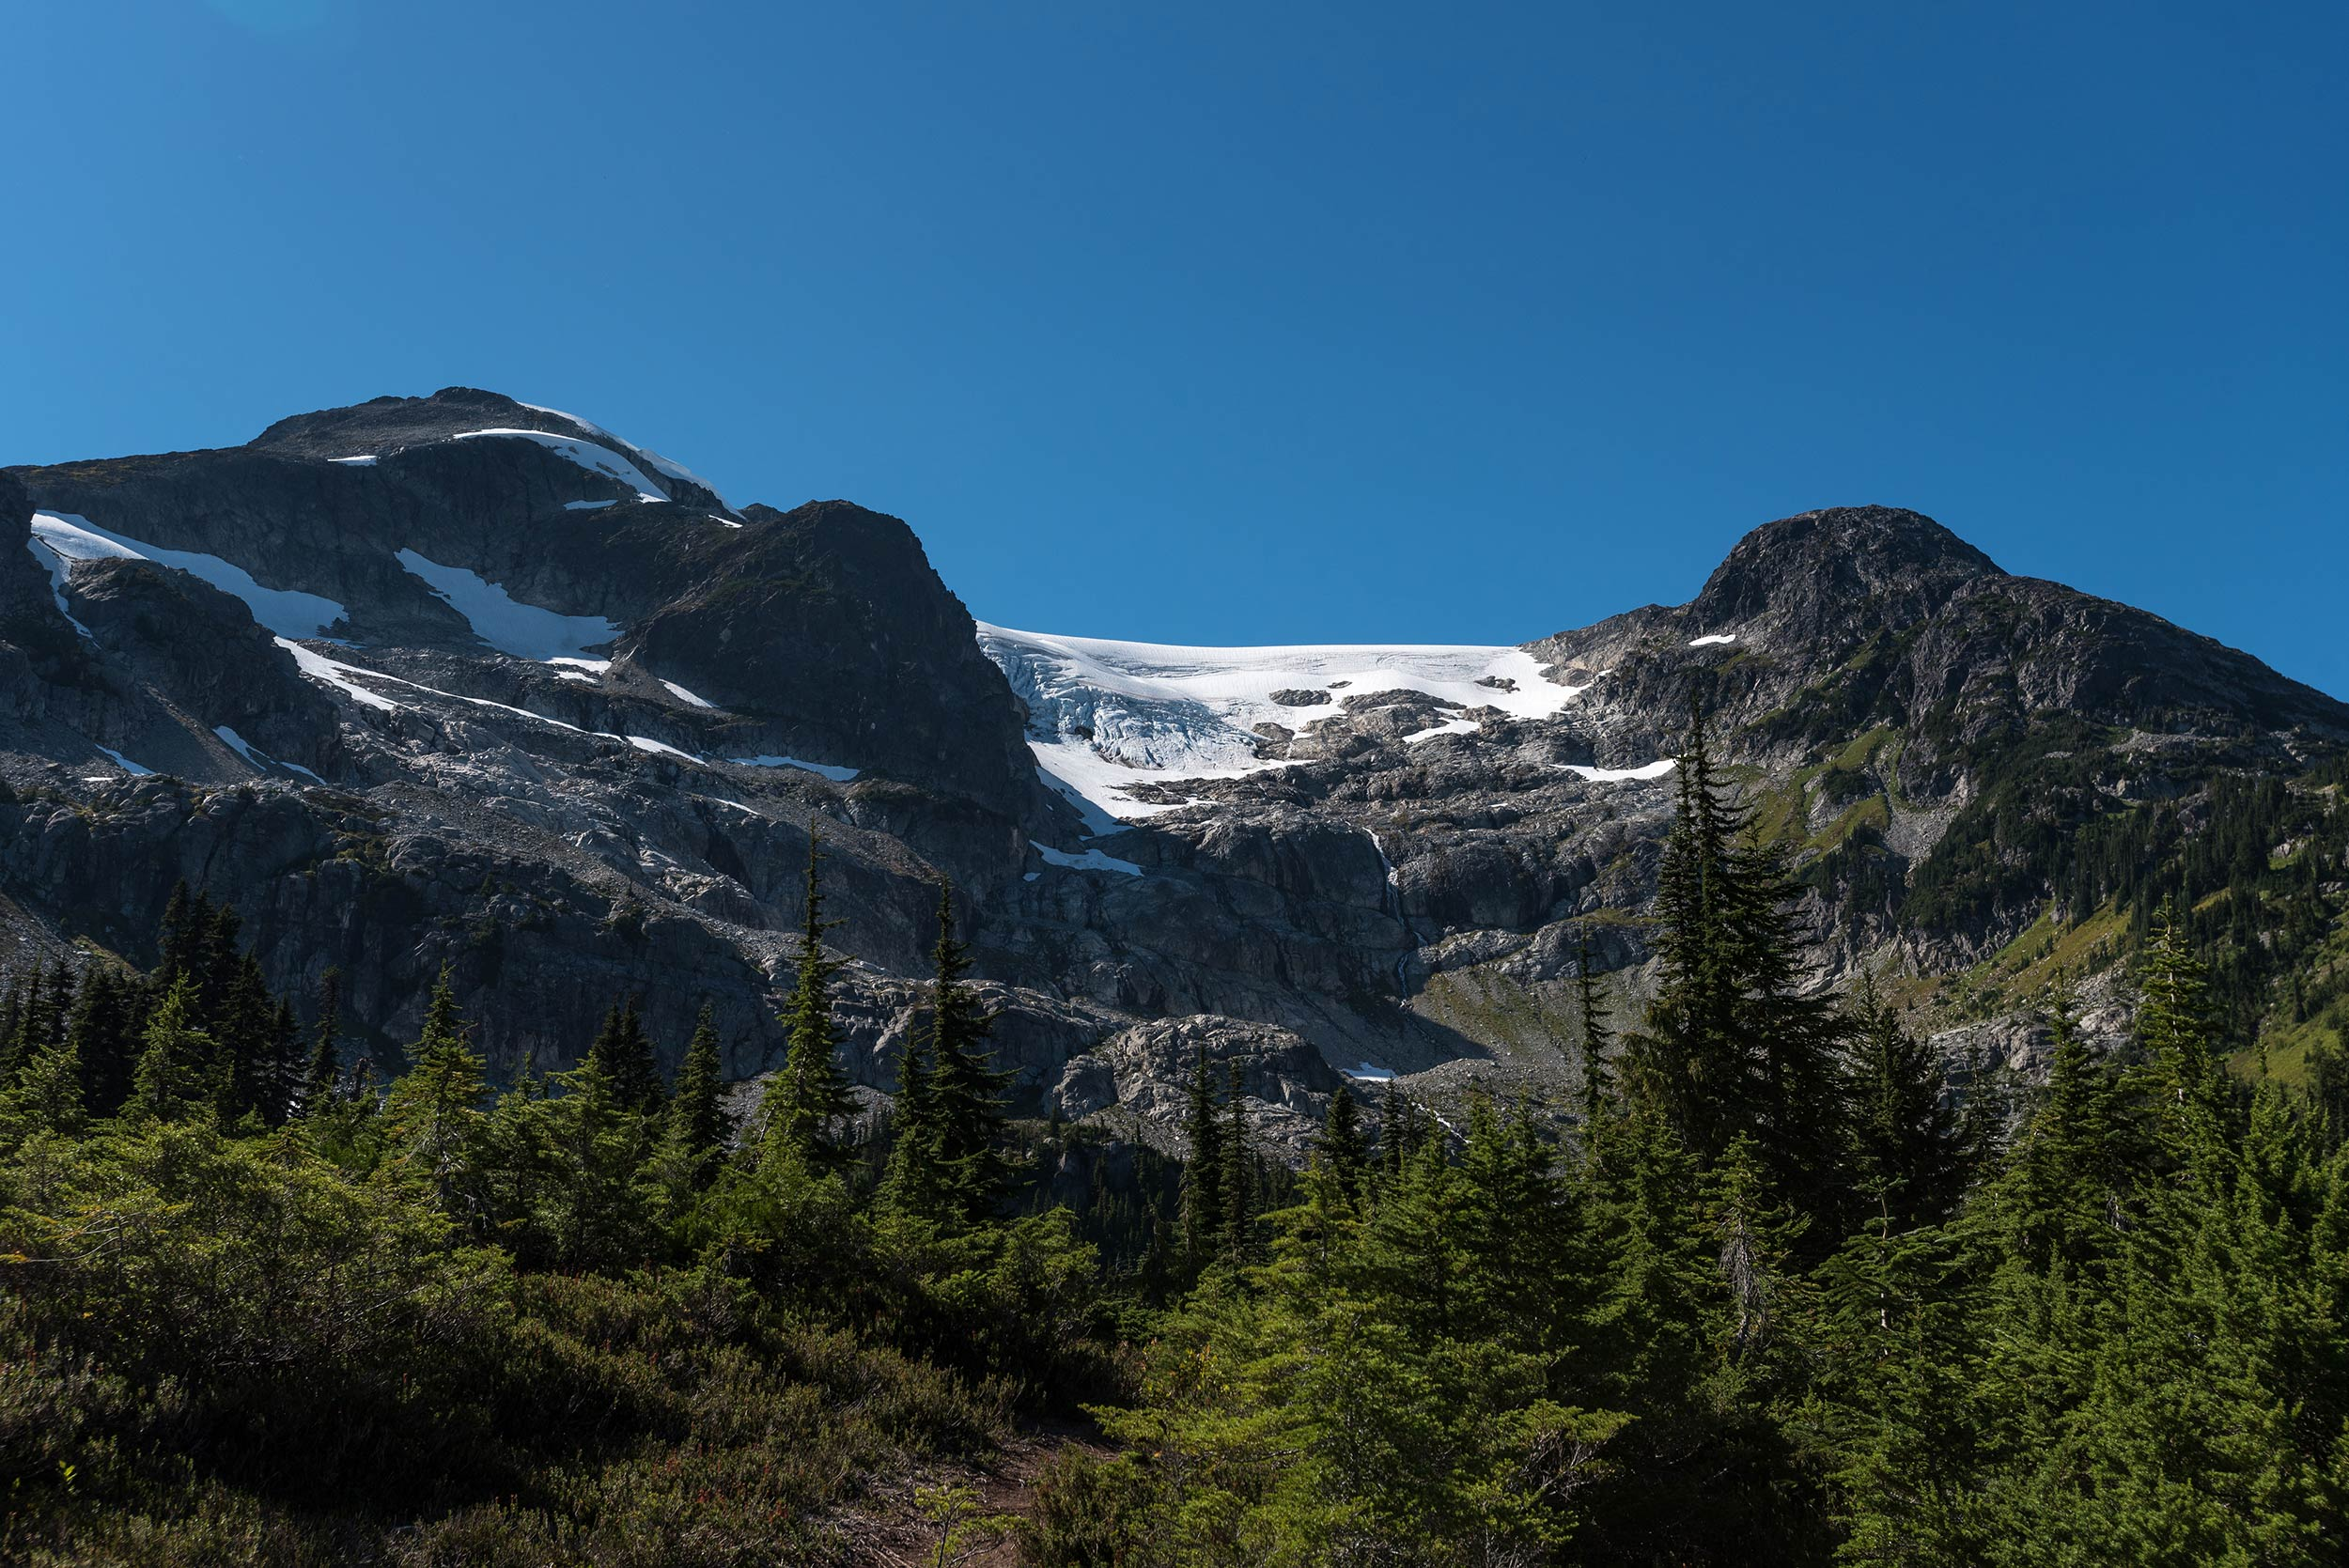 iceberg_lake_skywalk_trail3.jpg